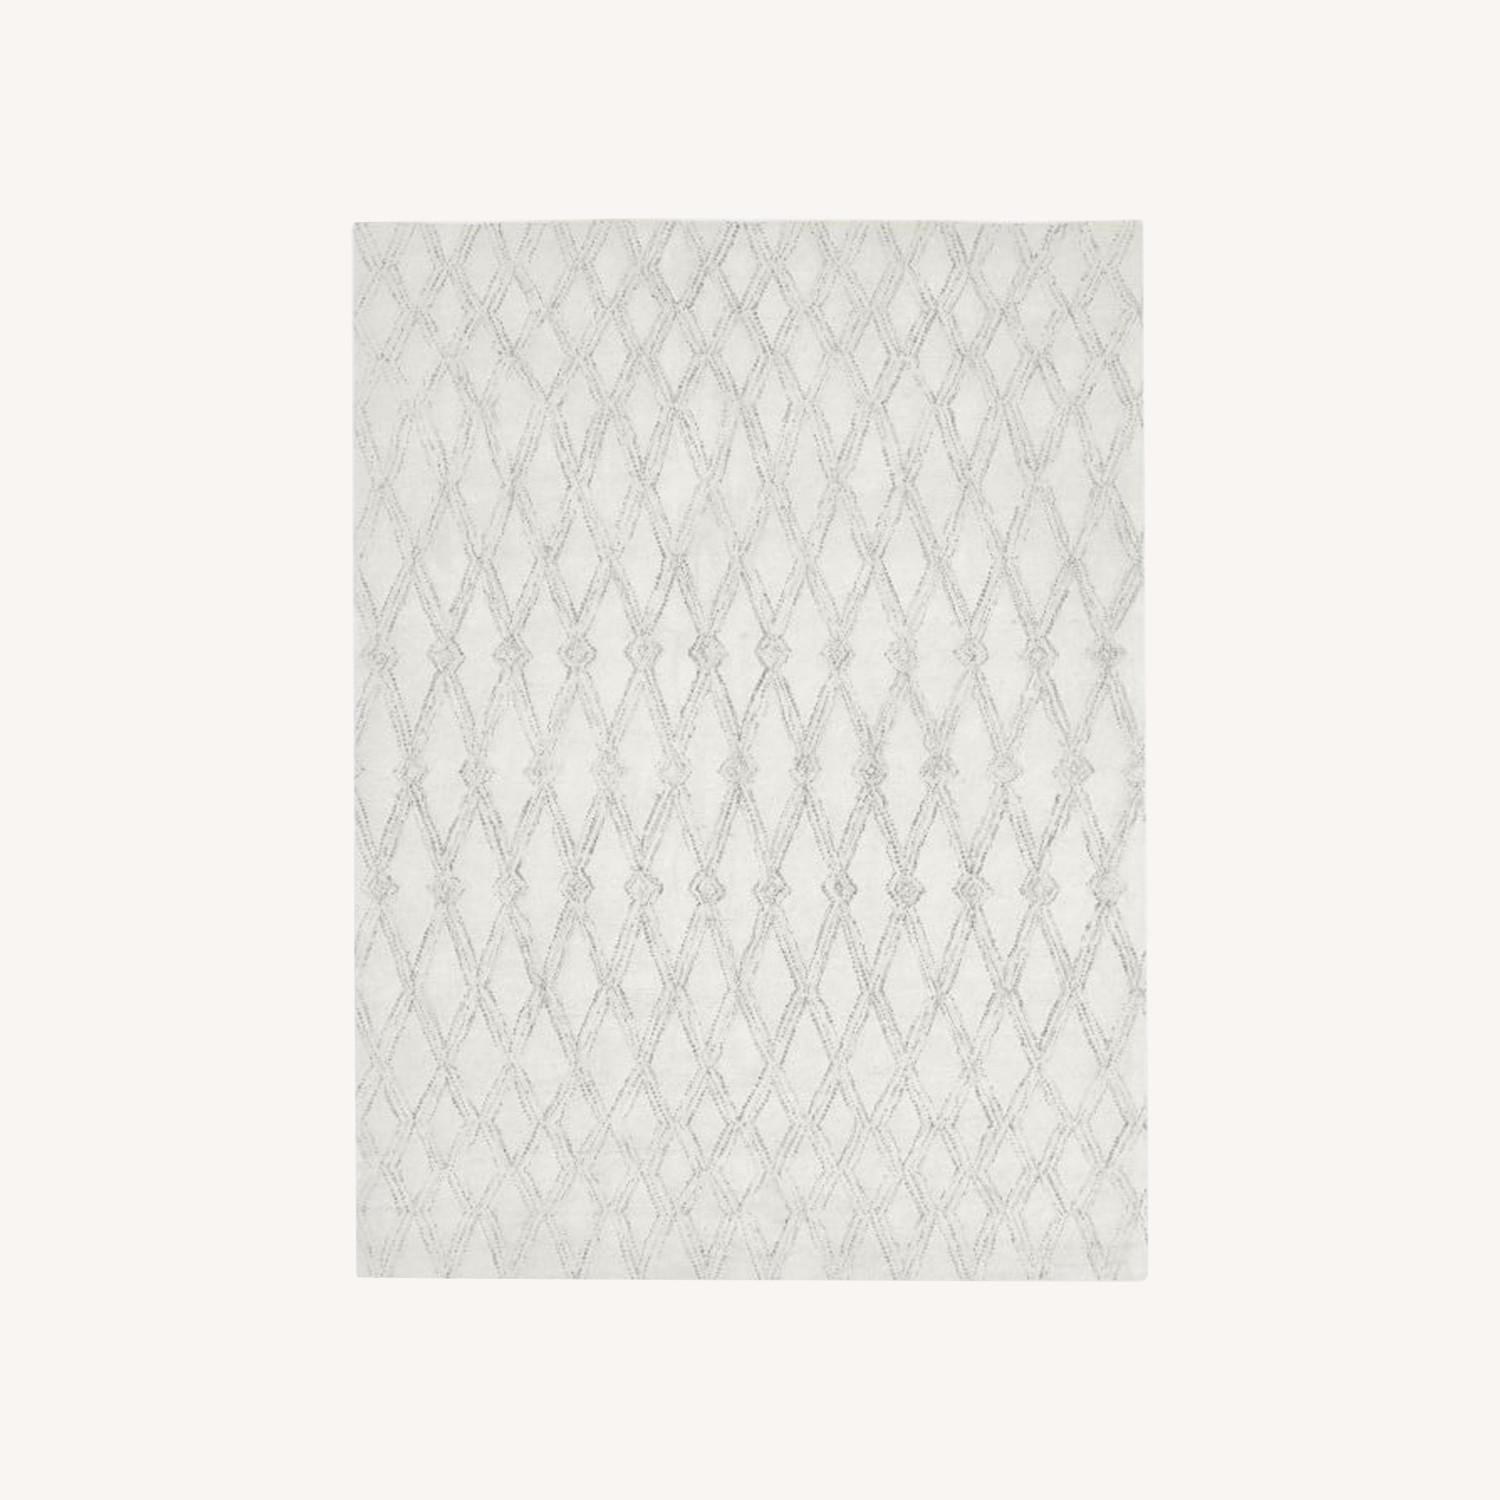 West Elm Hazy Lattice Rug, Ivory - image-0